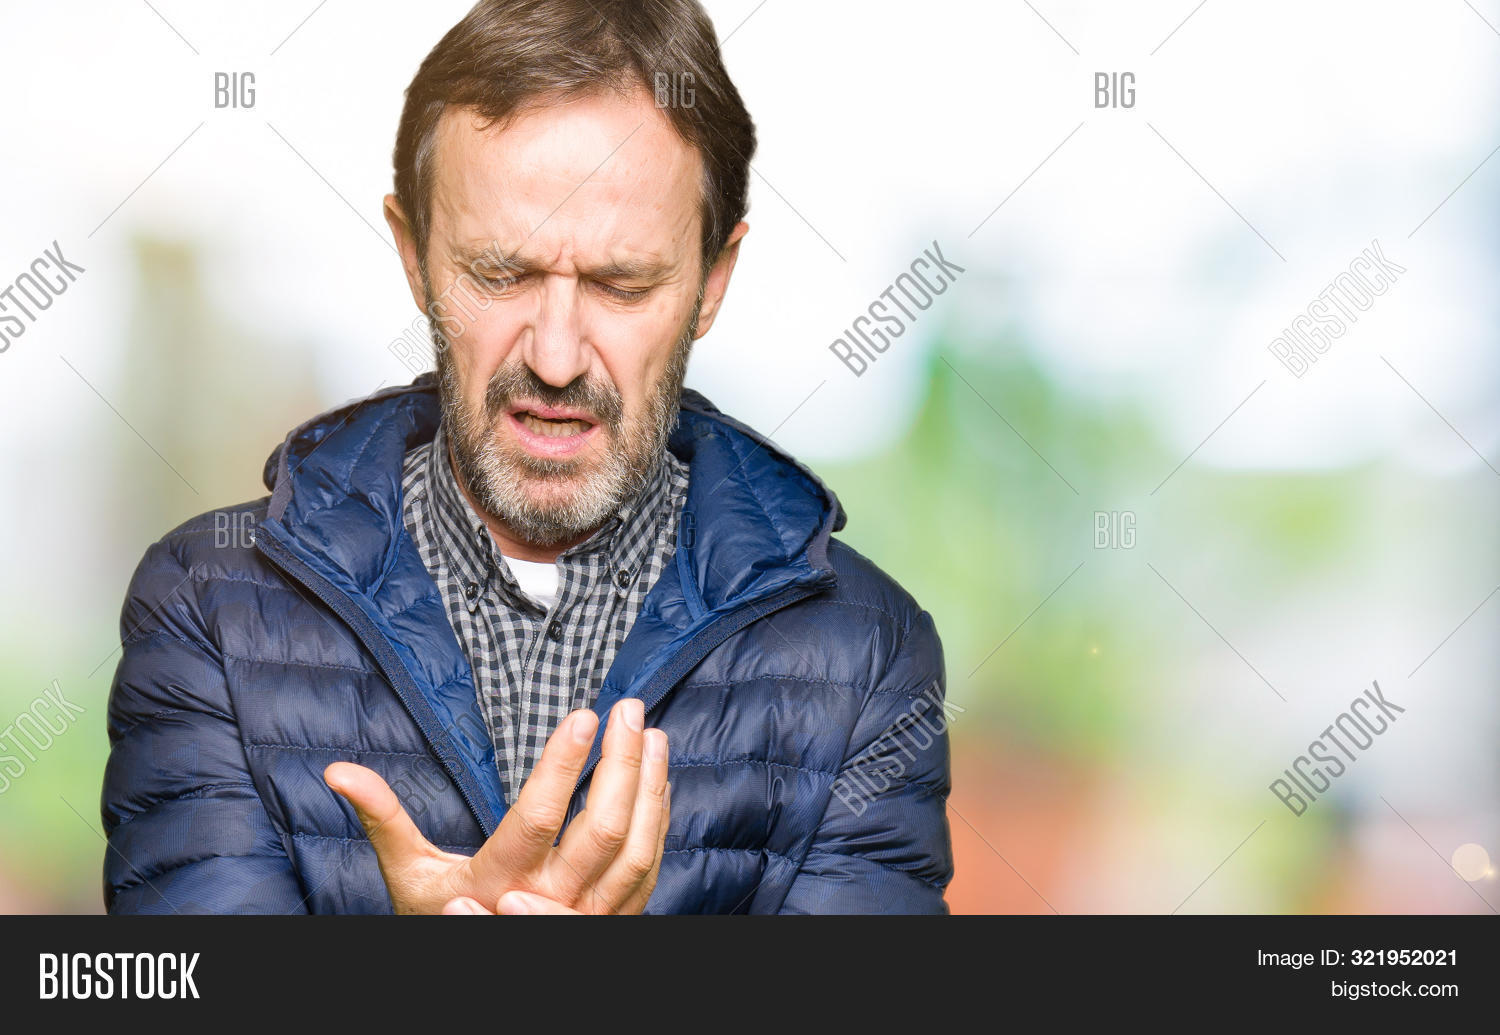 ache,adult,arm,arthritis,attractive,background,beard,body,bone,care,casual,coat,cool,cramp,elegant,fashion,finger,fingers,full body,grey hair,hand,handsome,health,hoary,hurt,illness,inflammation,injury,isolated,joint,man,massage,mature,medical,medicine,middle age,pain,painful,physical,portrait,problem,rheumatism,rheumatoid,senior,sore,suffer,therapy,winter,wrist